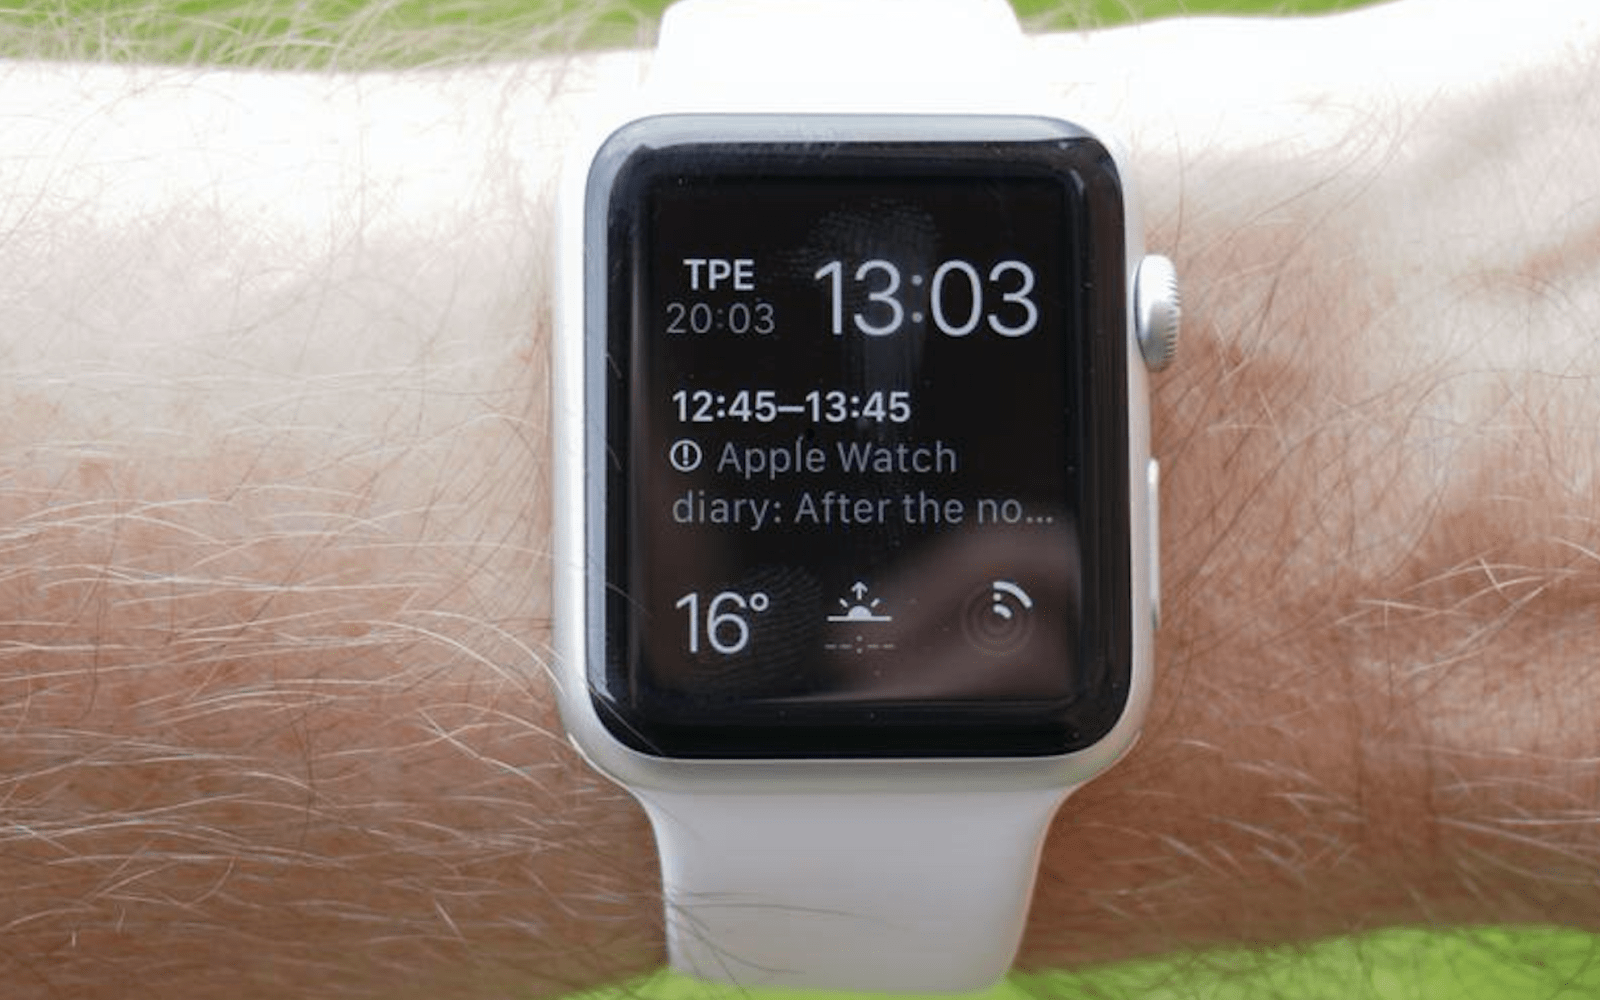 Apple Watch now available in India as the country considers letting Apple open its own stores